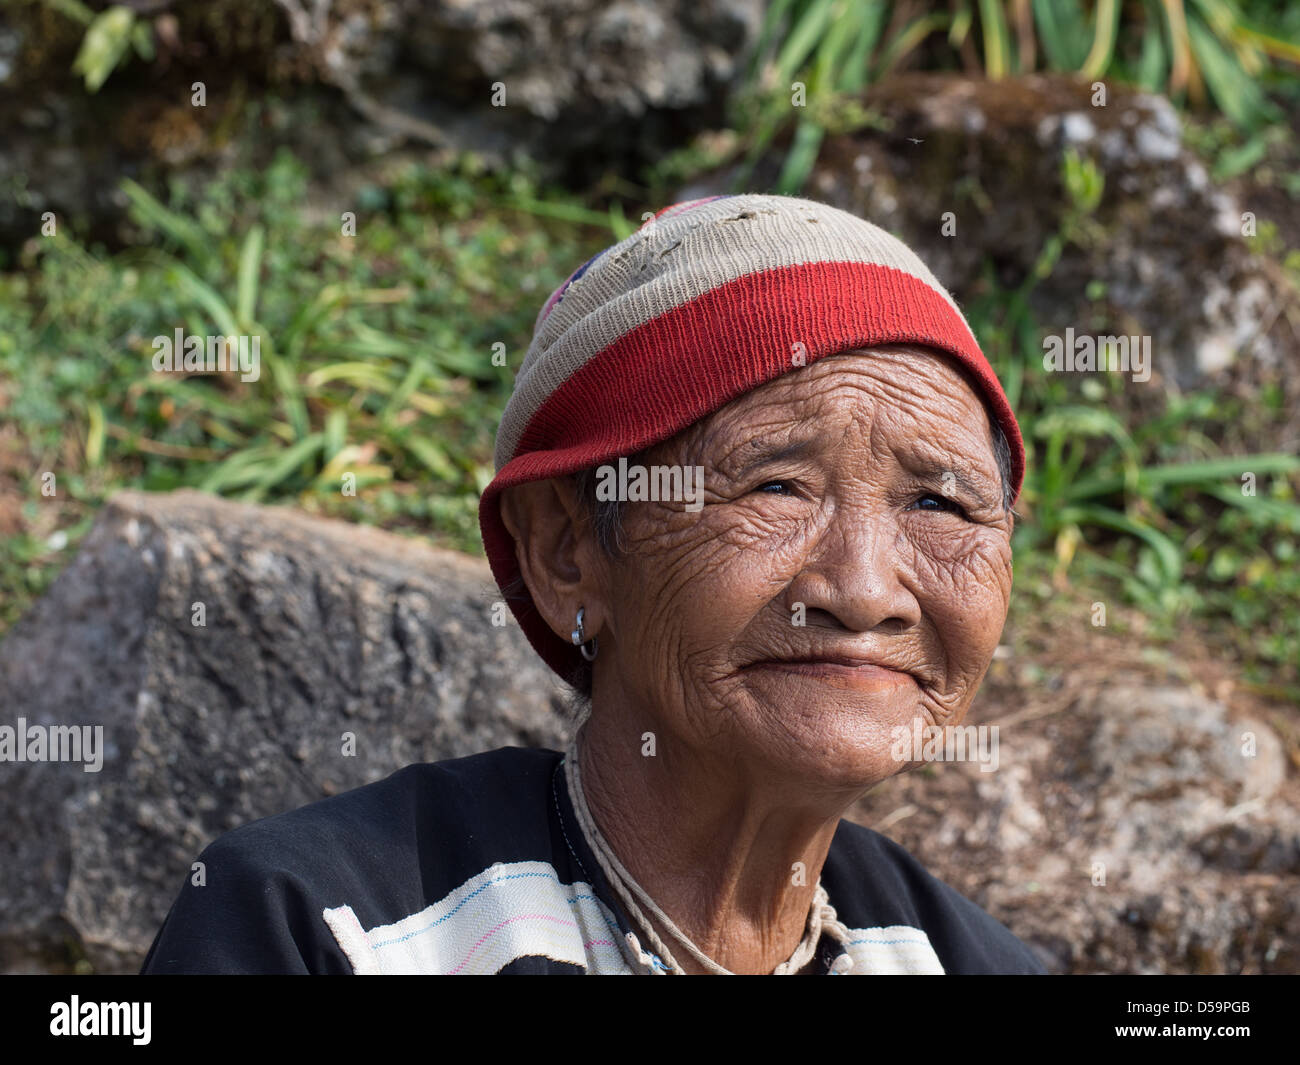 An Old Thai Woman with a wrinkled face from Doi Angkhan, Northern Thailand - Stock Image